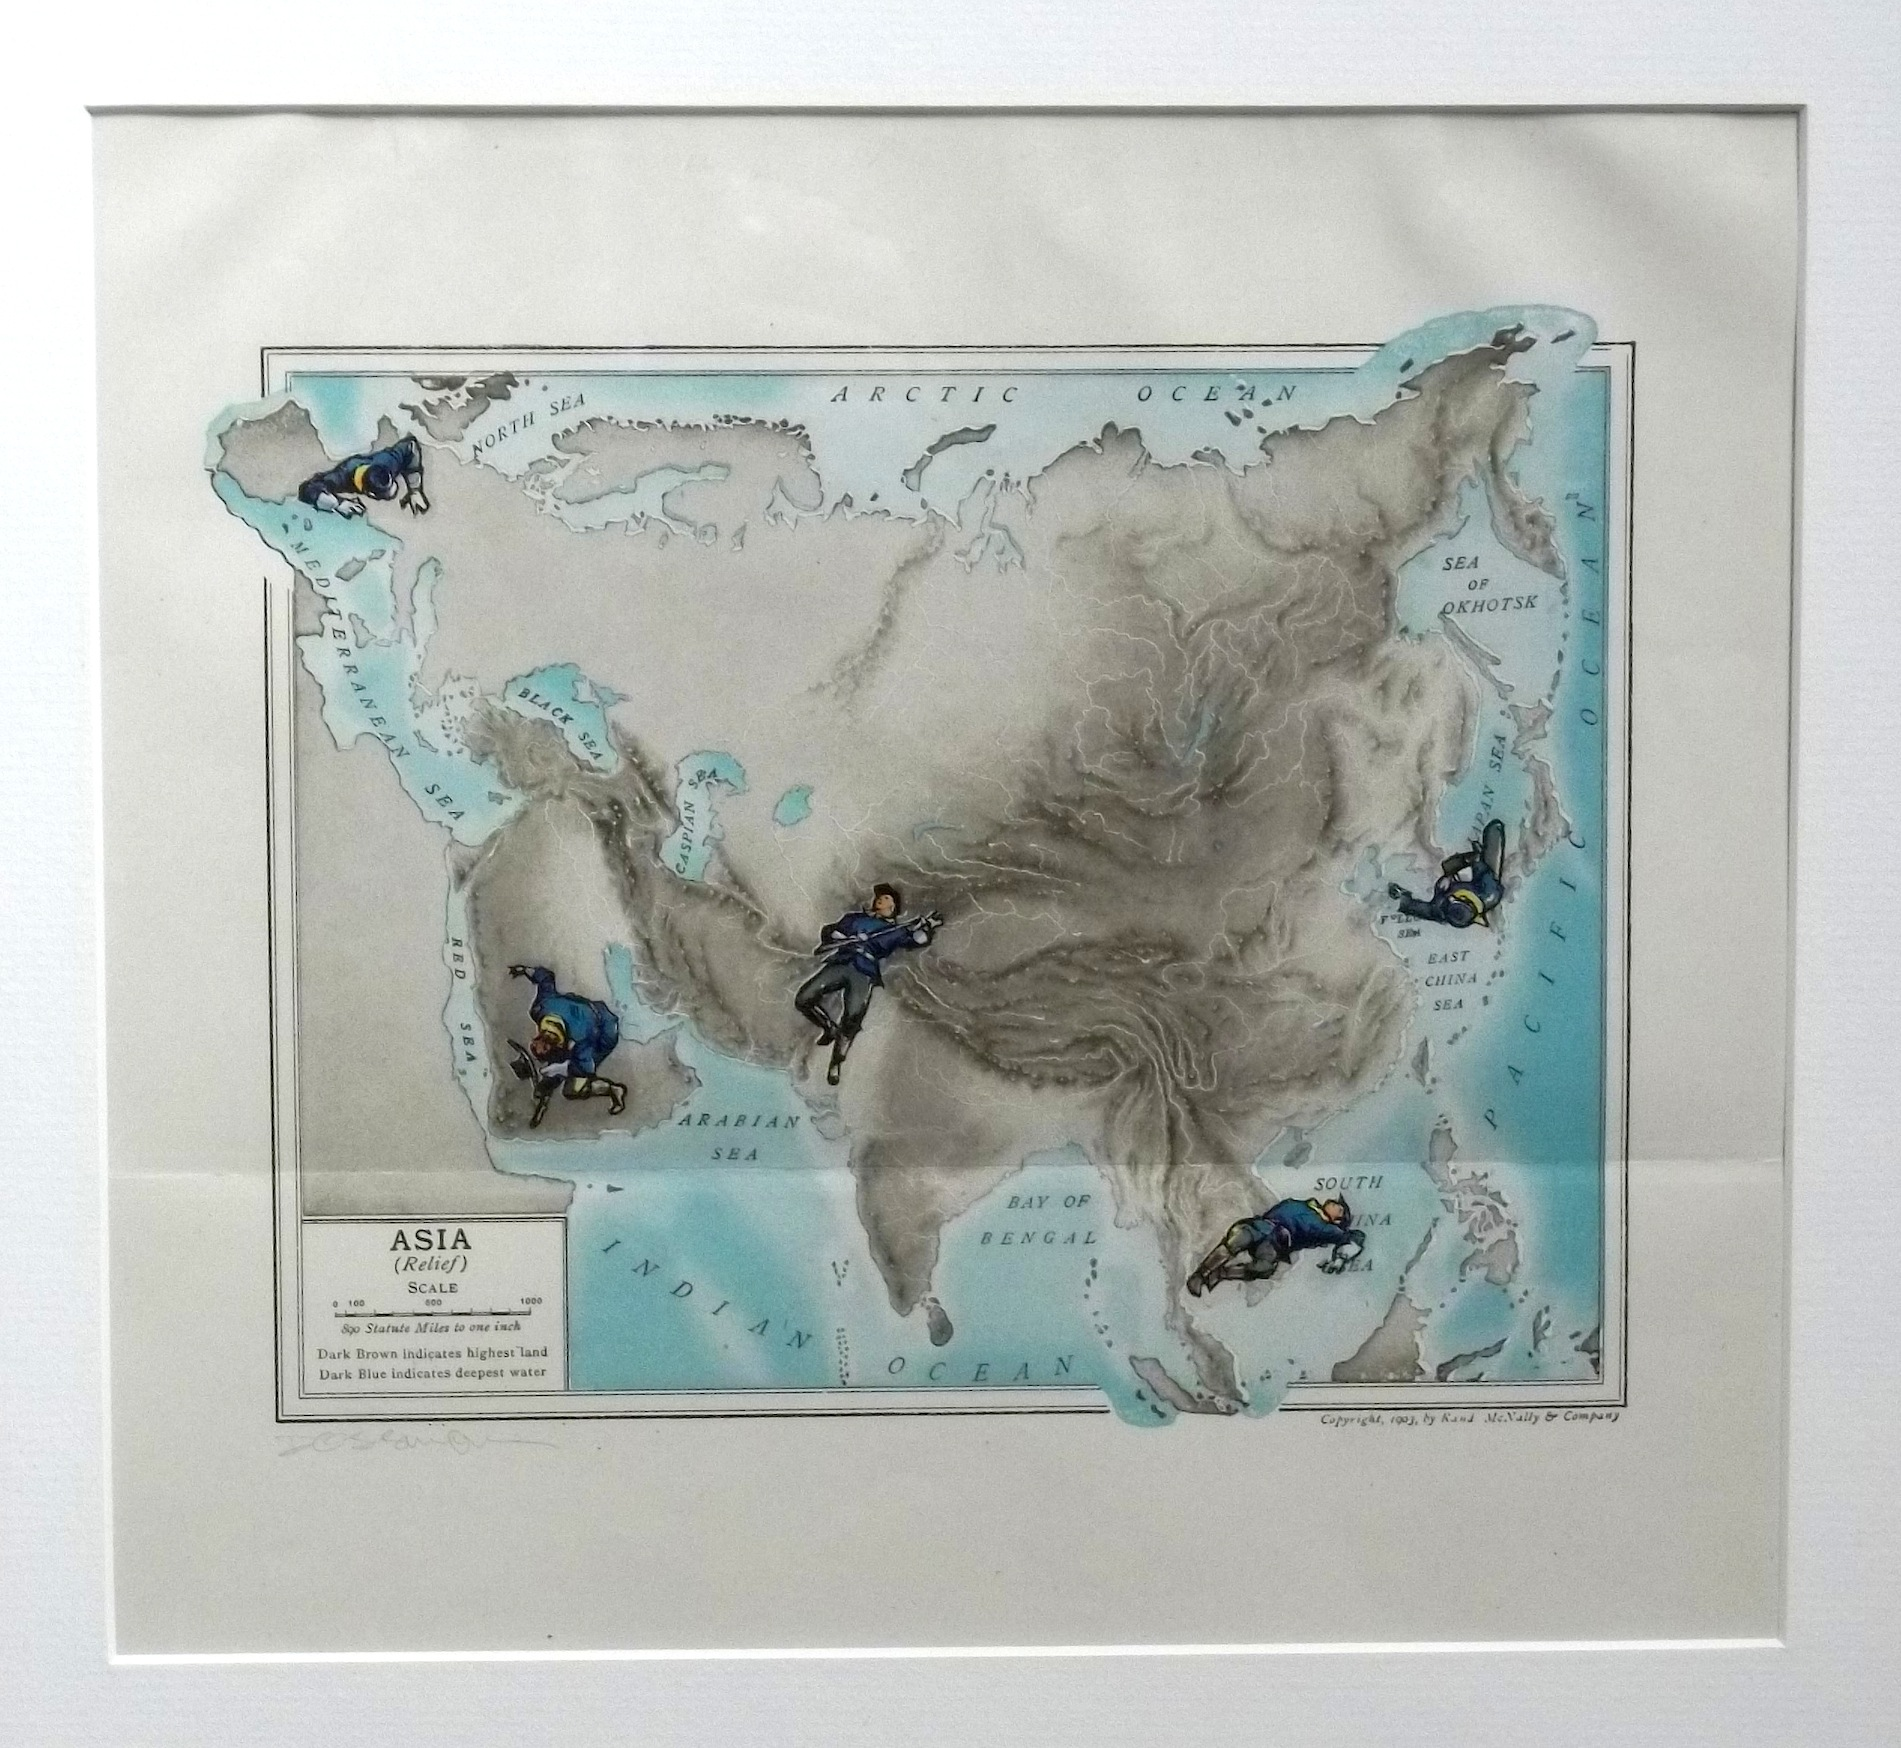 "Asia (no relief)  vintage map, transfer figures  8 x 10""  framed  $350"